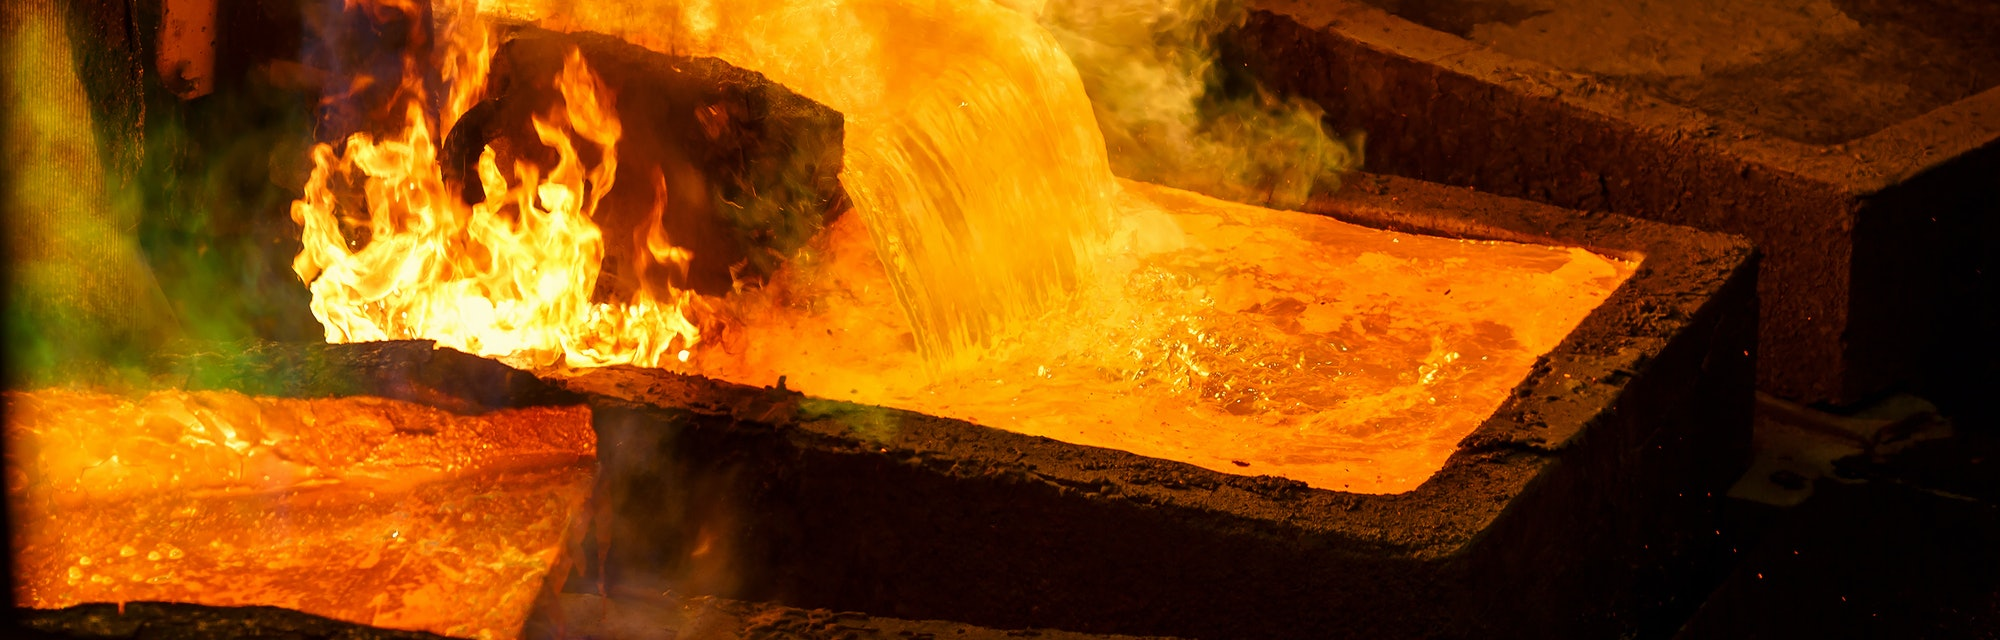 Molten metal is poured into large rectangular molds for casting. When melting the evaporation of gases. Bright flames and intense heat. Copper production at the metallurgical plant. Closeup.